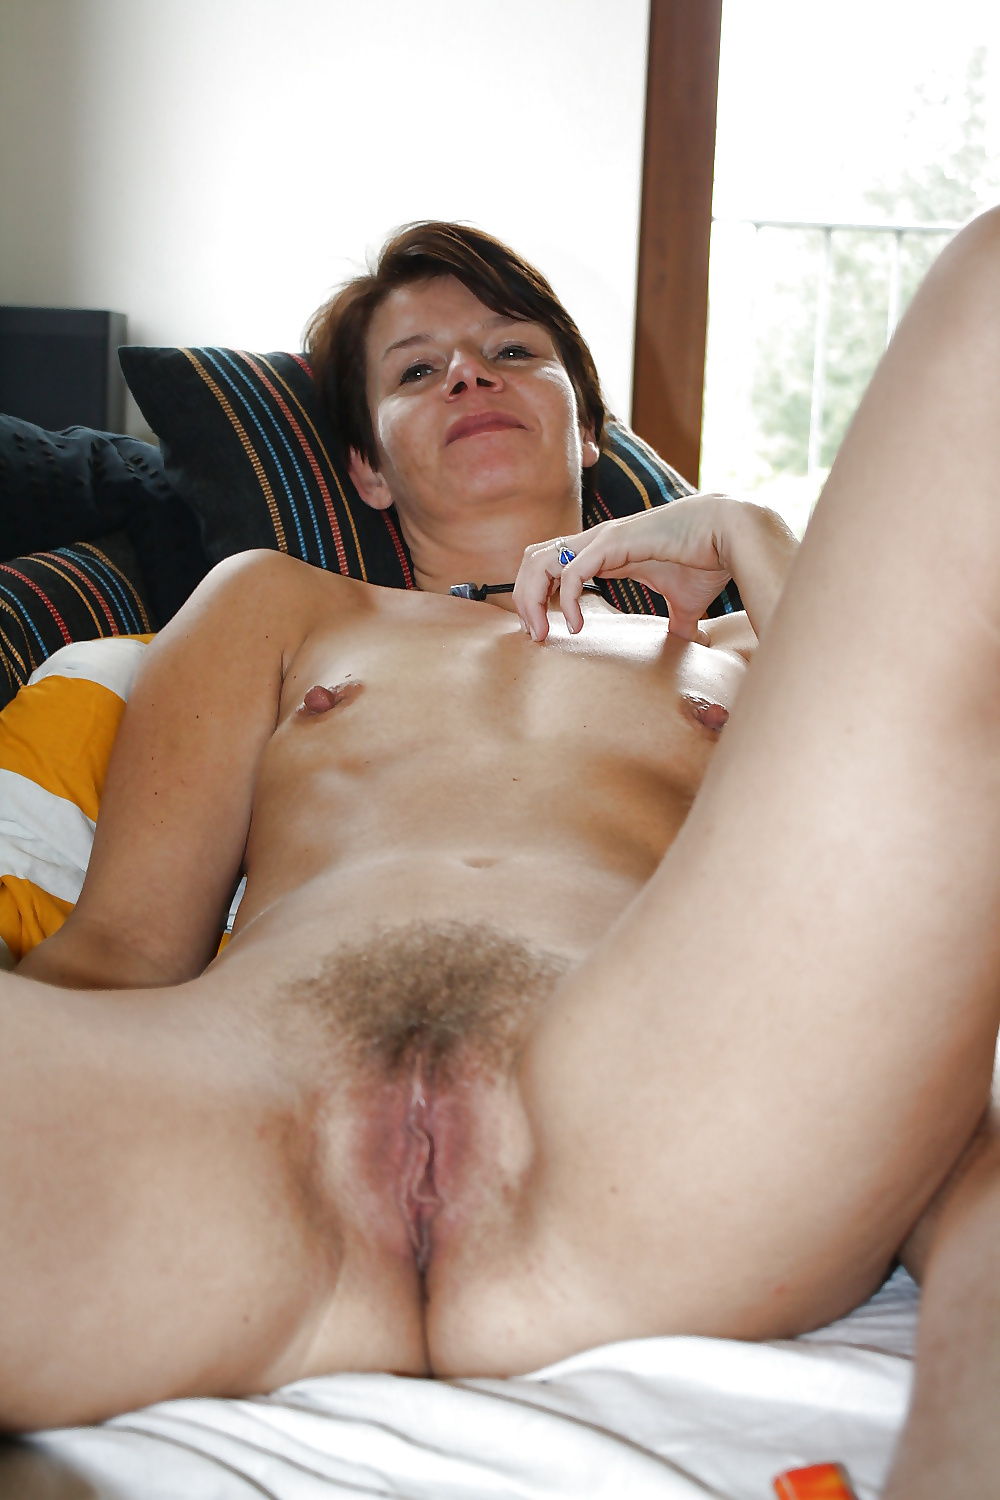 Hairy mature nude selfies — pic 12